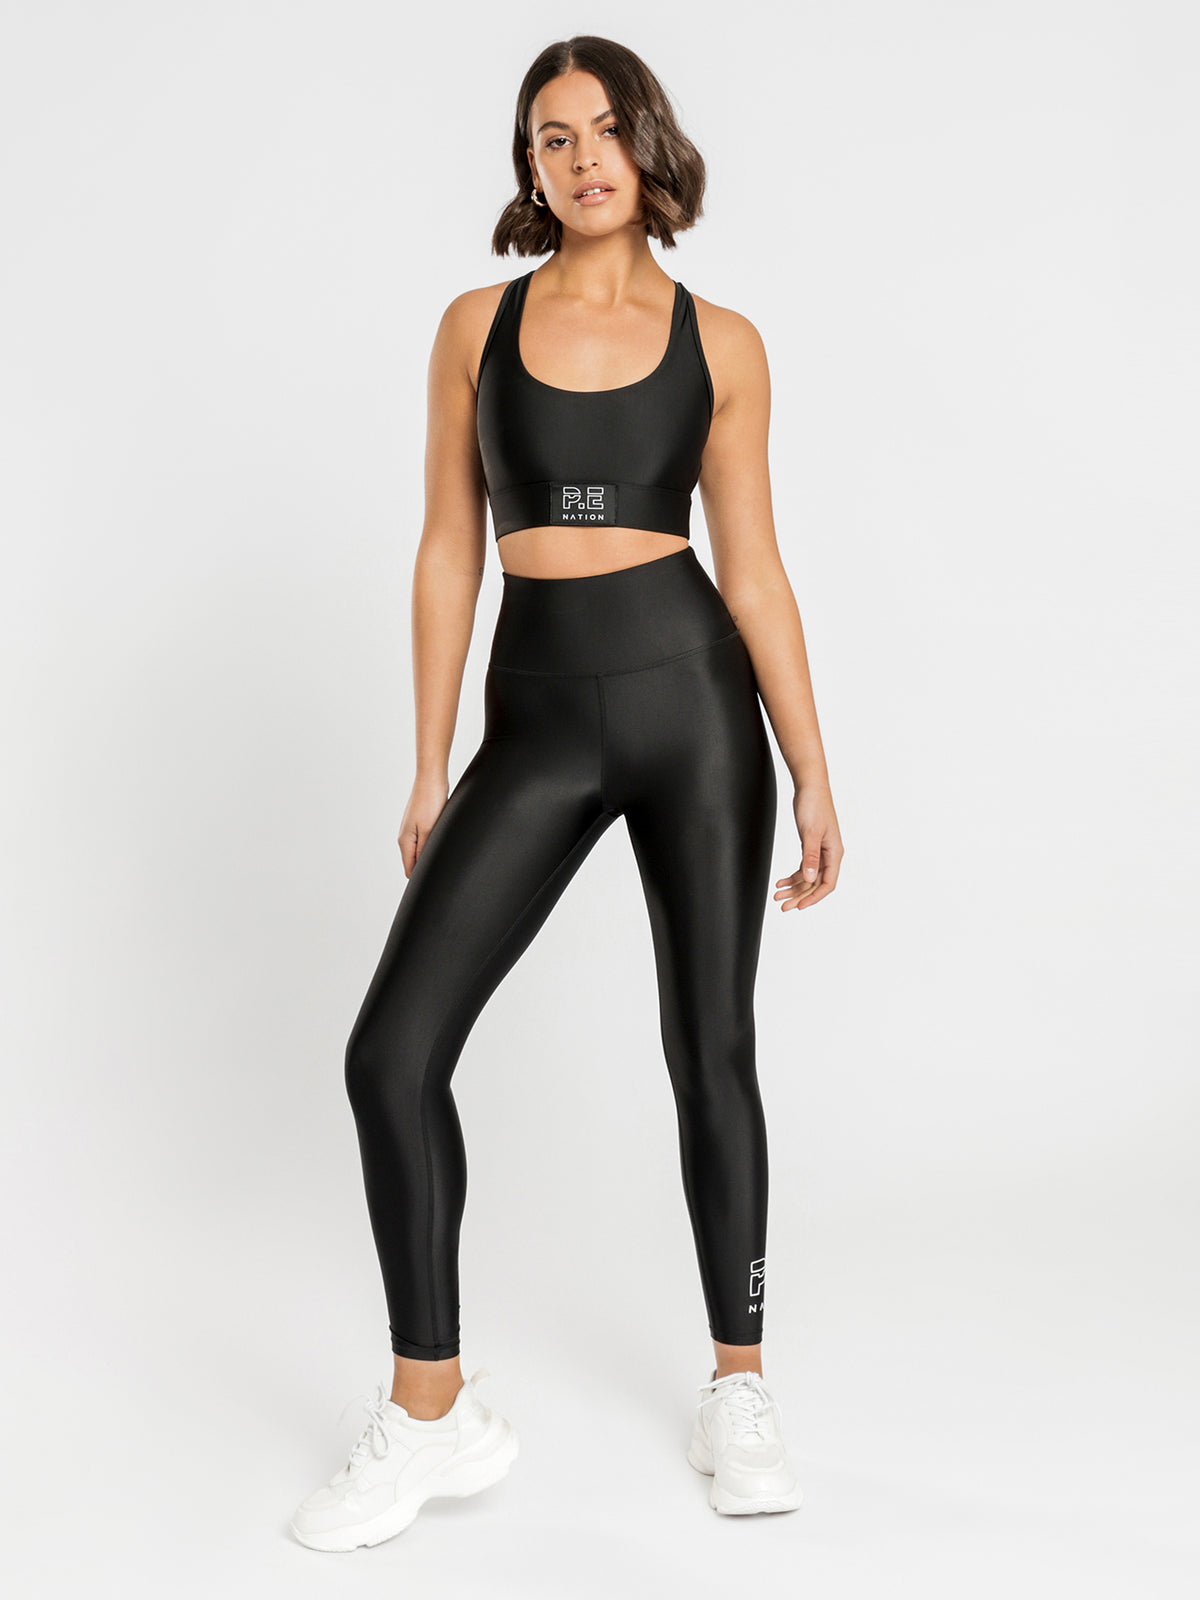 Endurance Leggings in Black